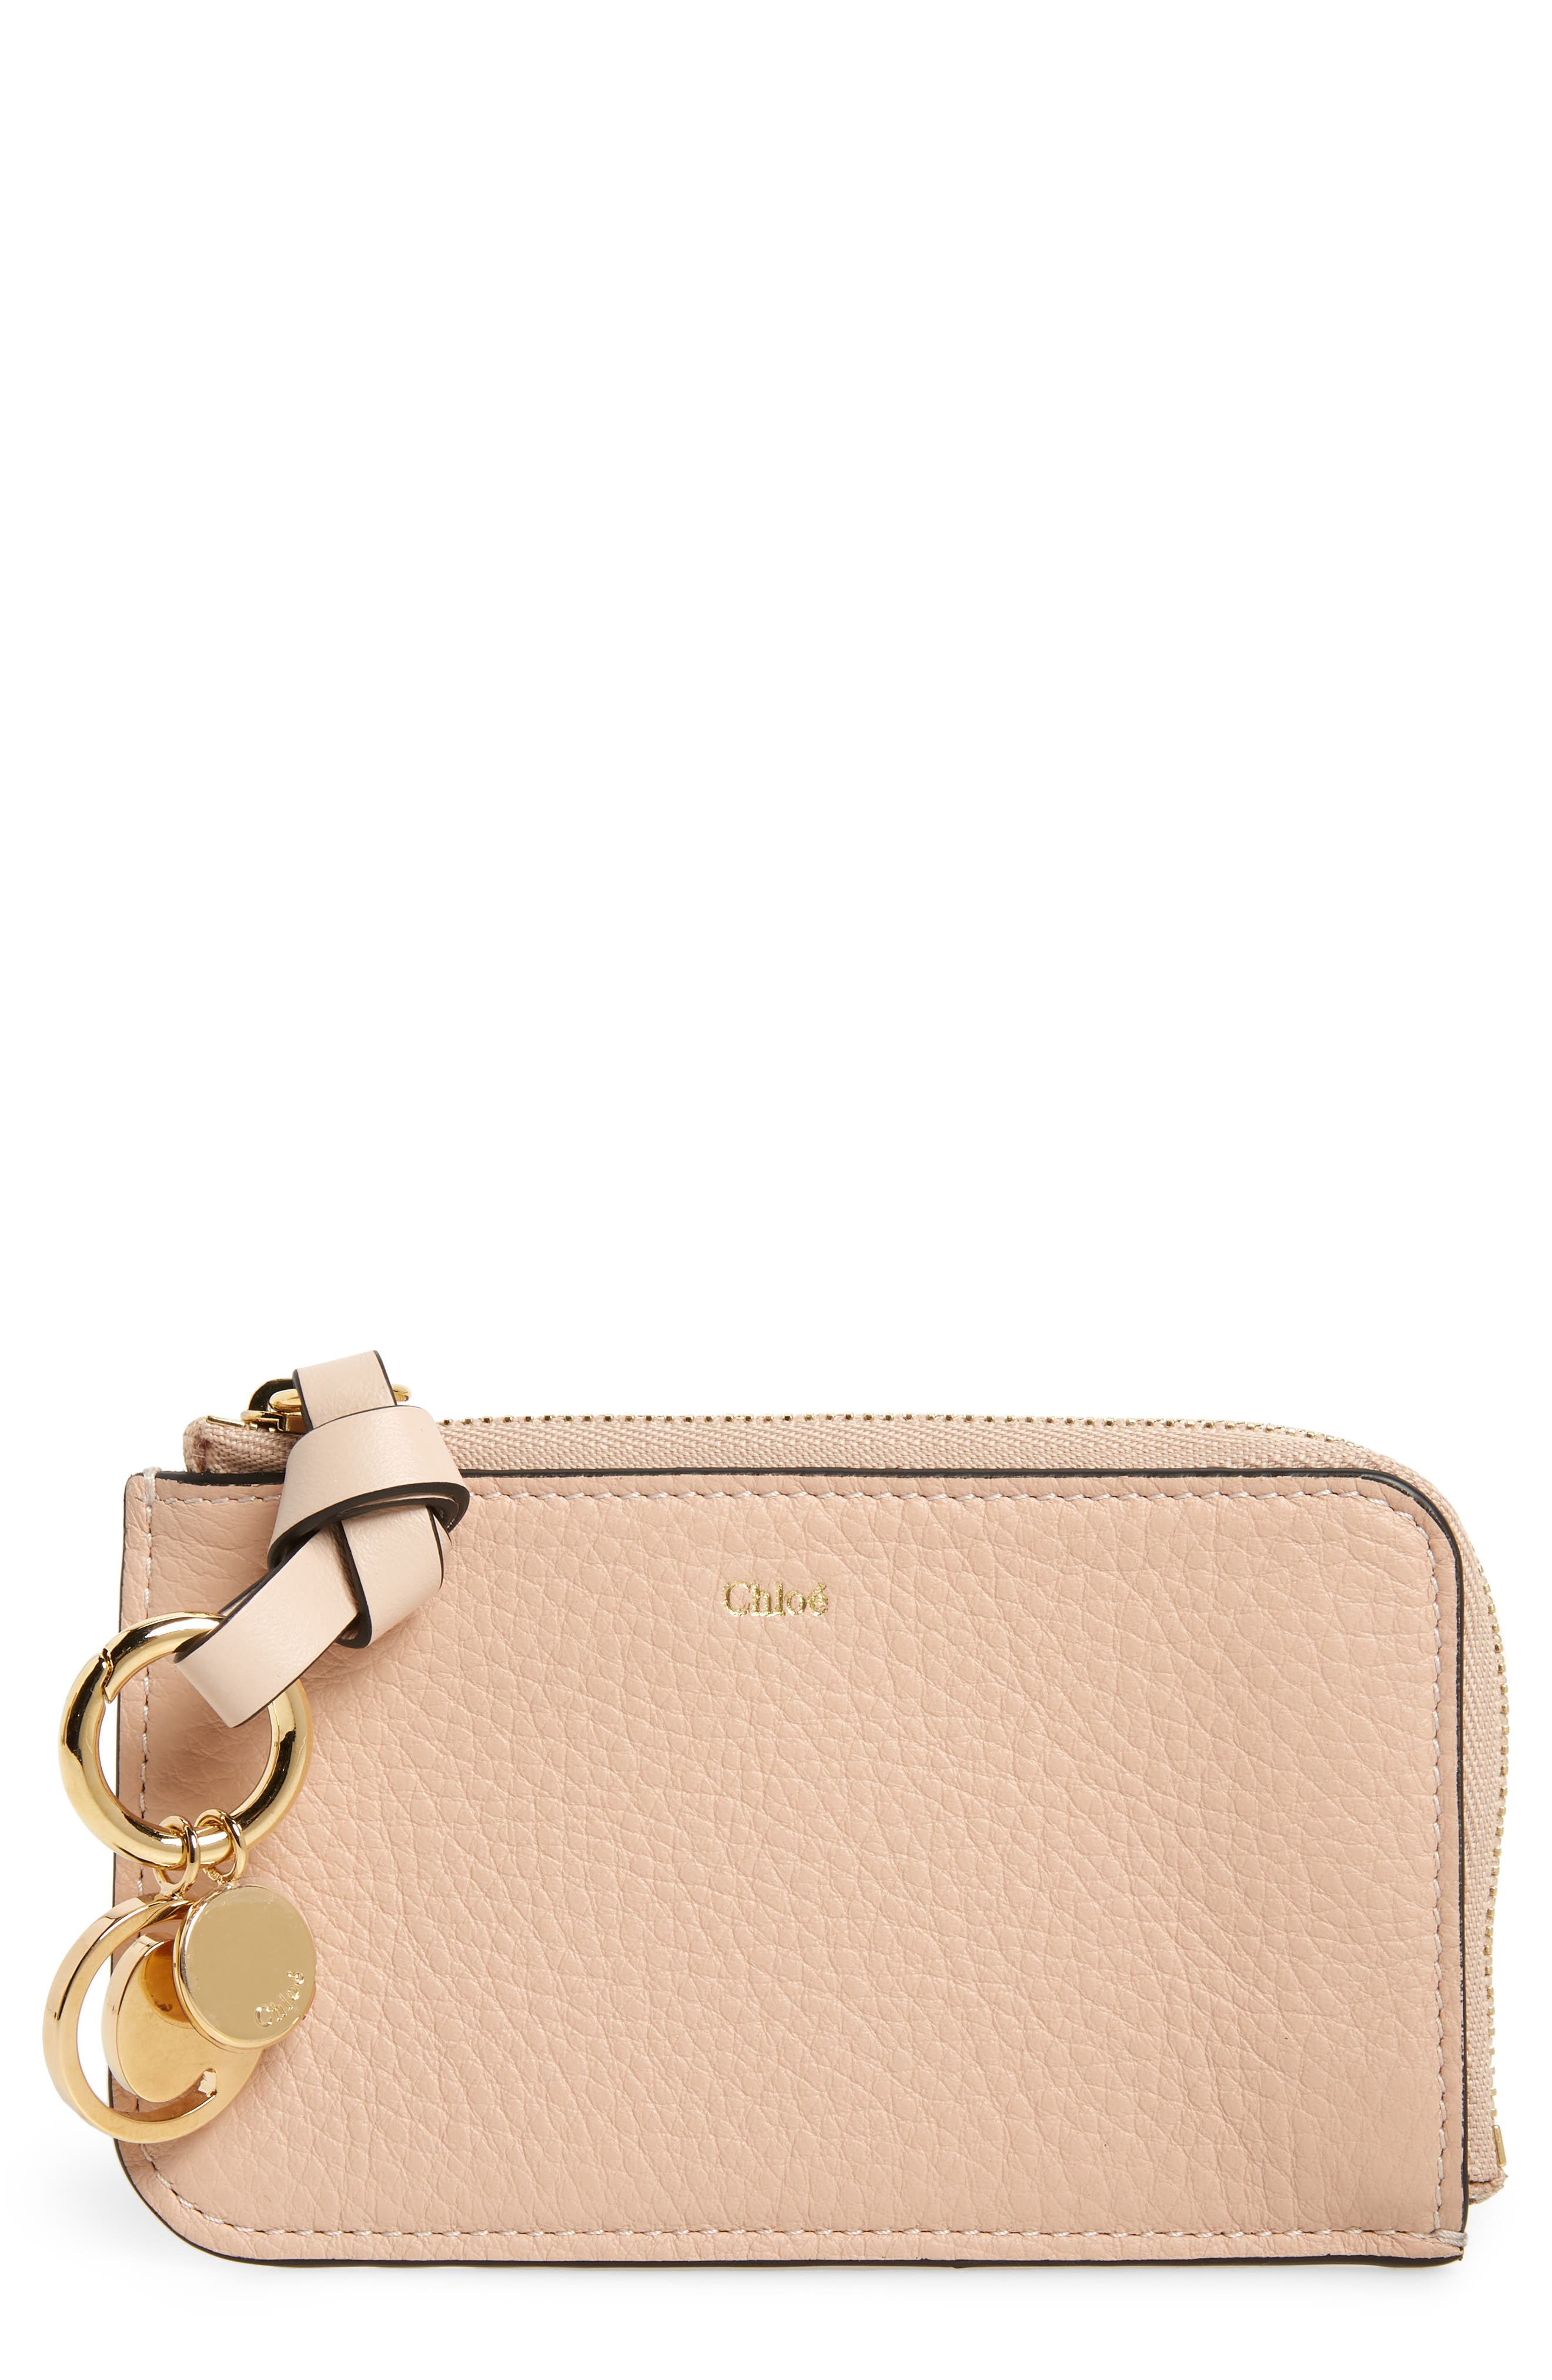 CHLOÉ Alphabet Leather Card Holder, Main, color, BLUSH NUDE